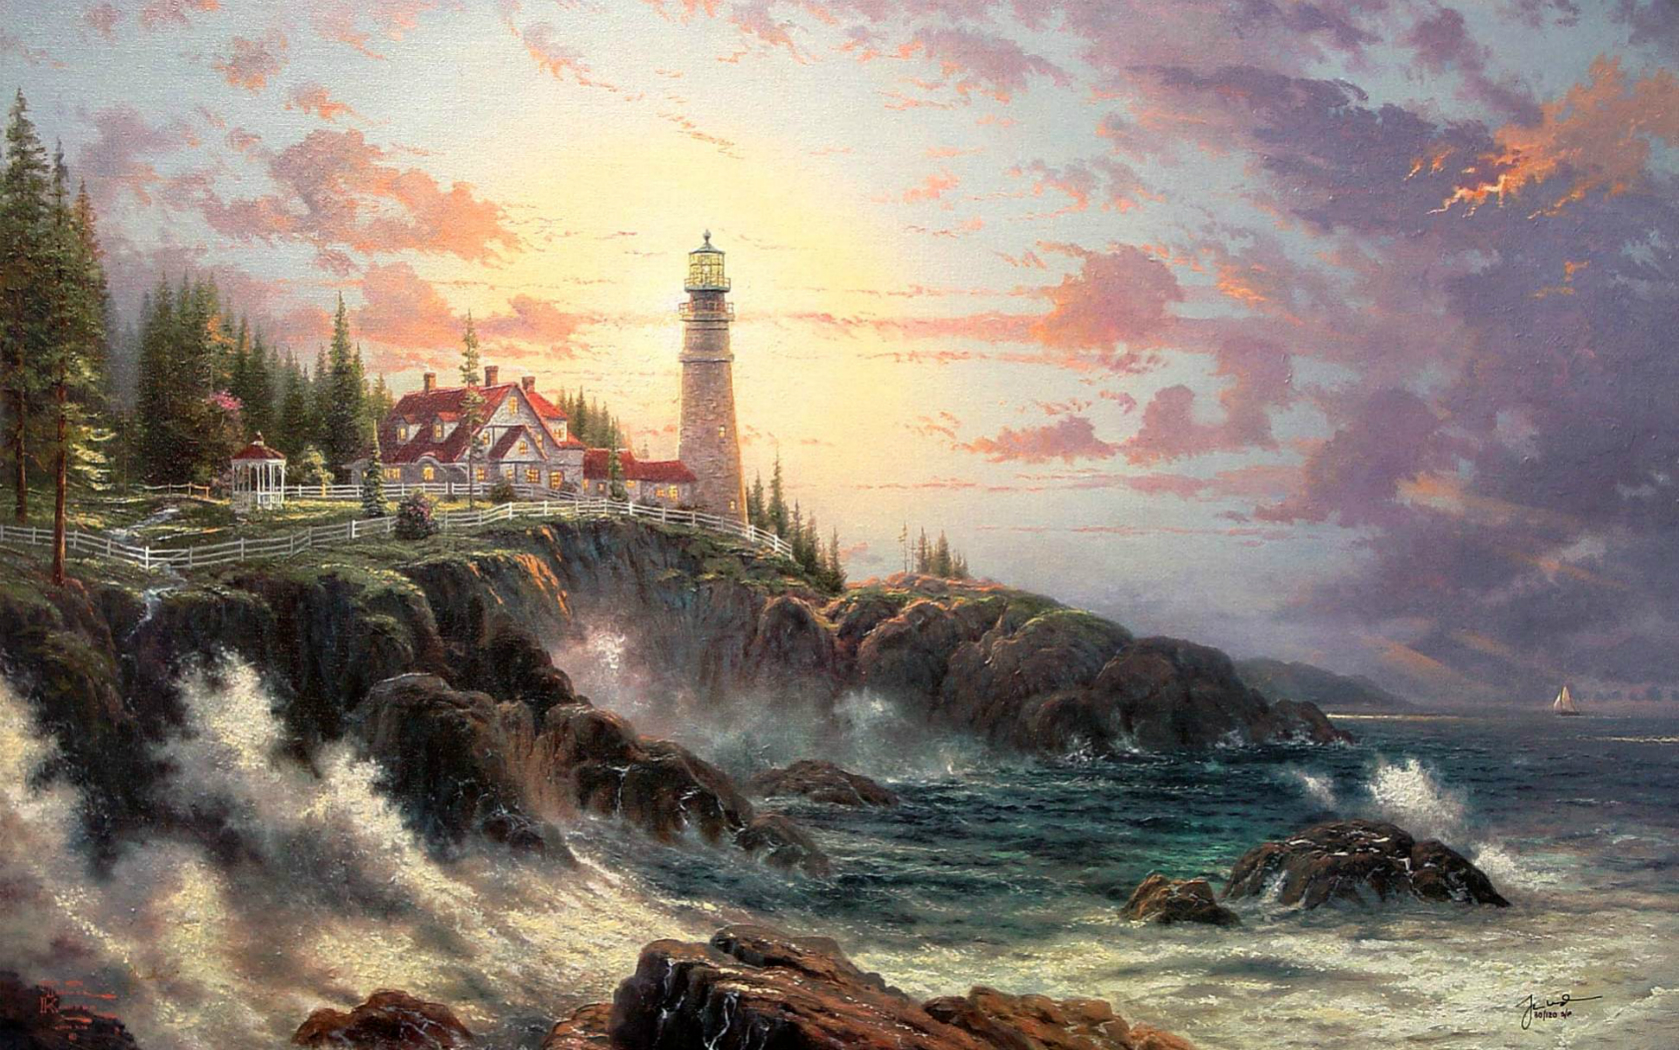 Thomas kinkade screensavers